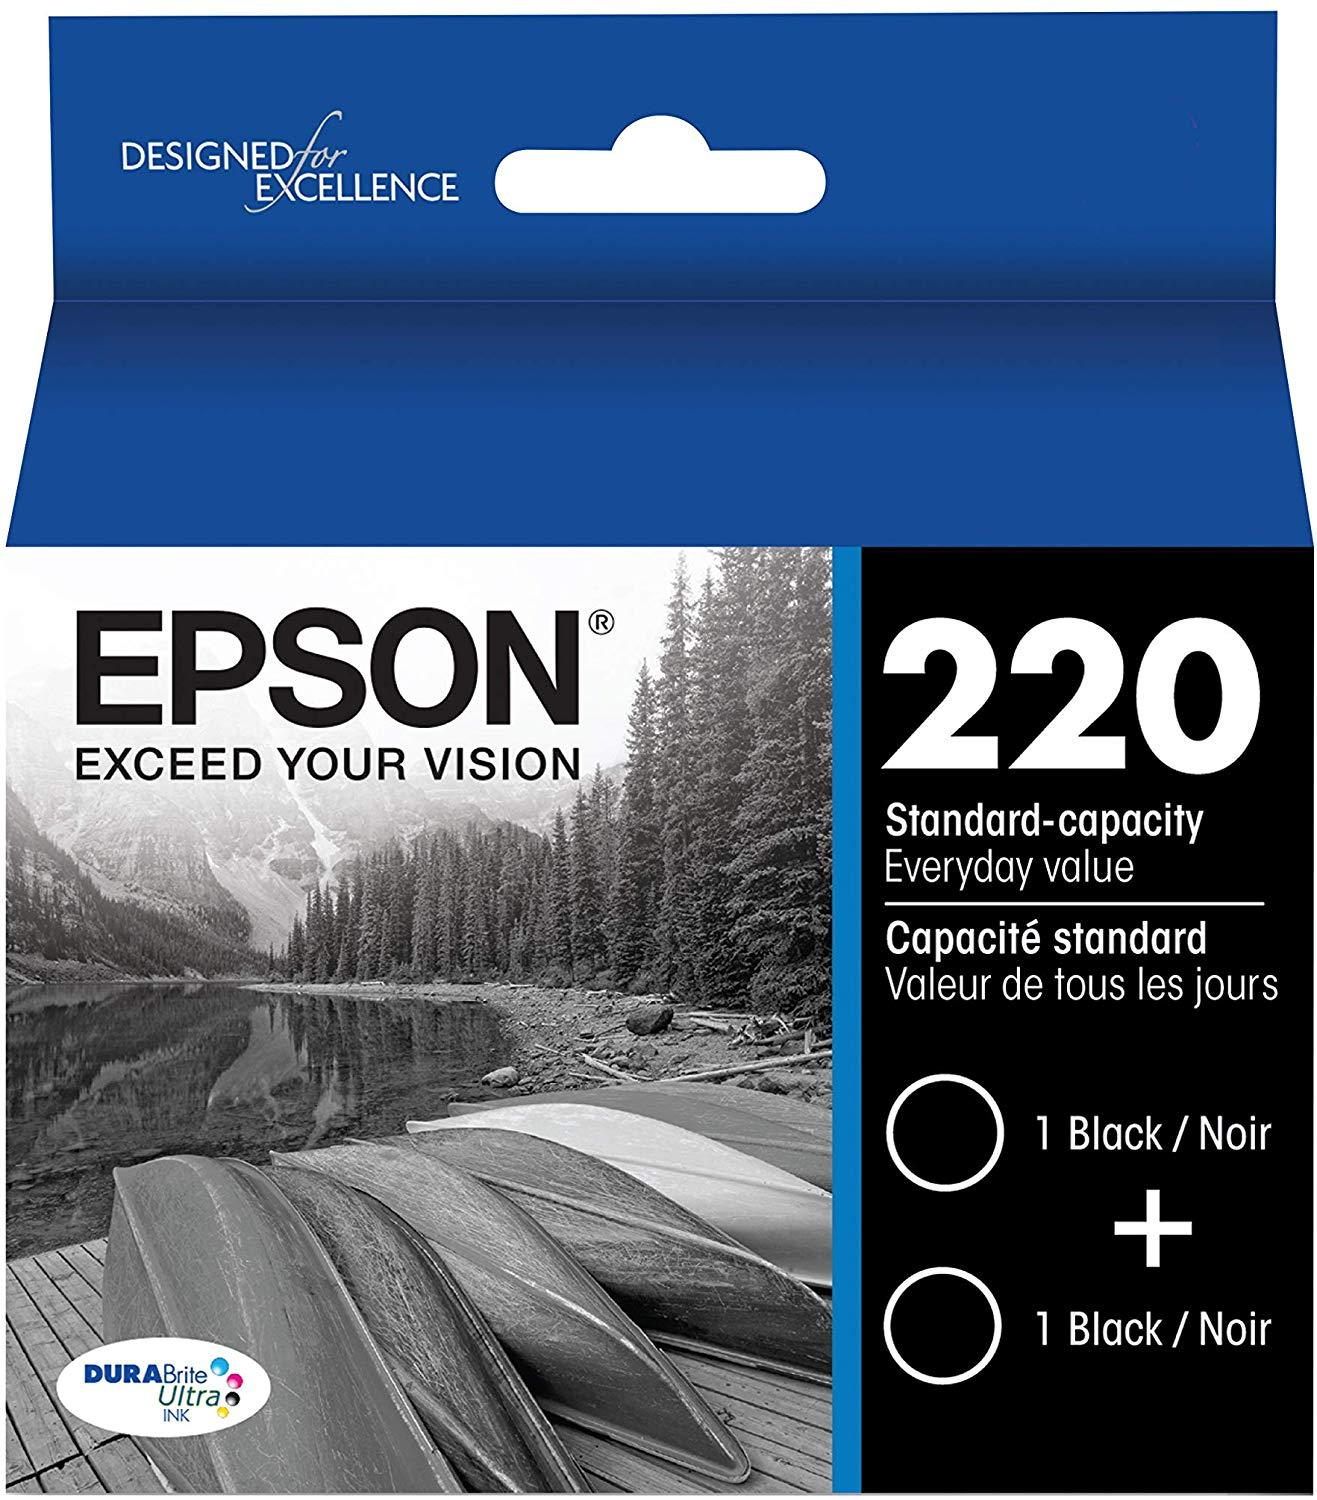 Epson T220120-D2 220 DURABrite Ultra Black Dual Pack Standard Capacity Cartridge Ink